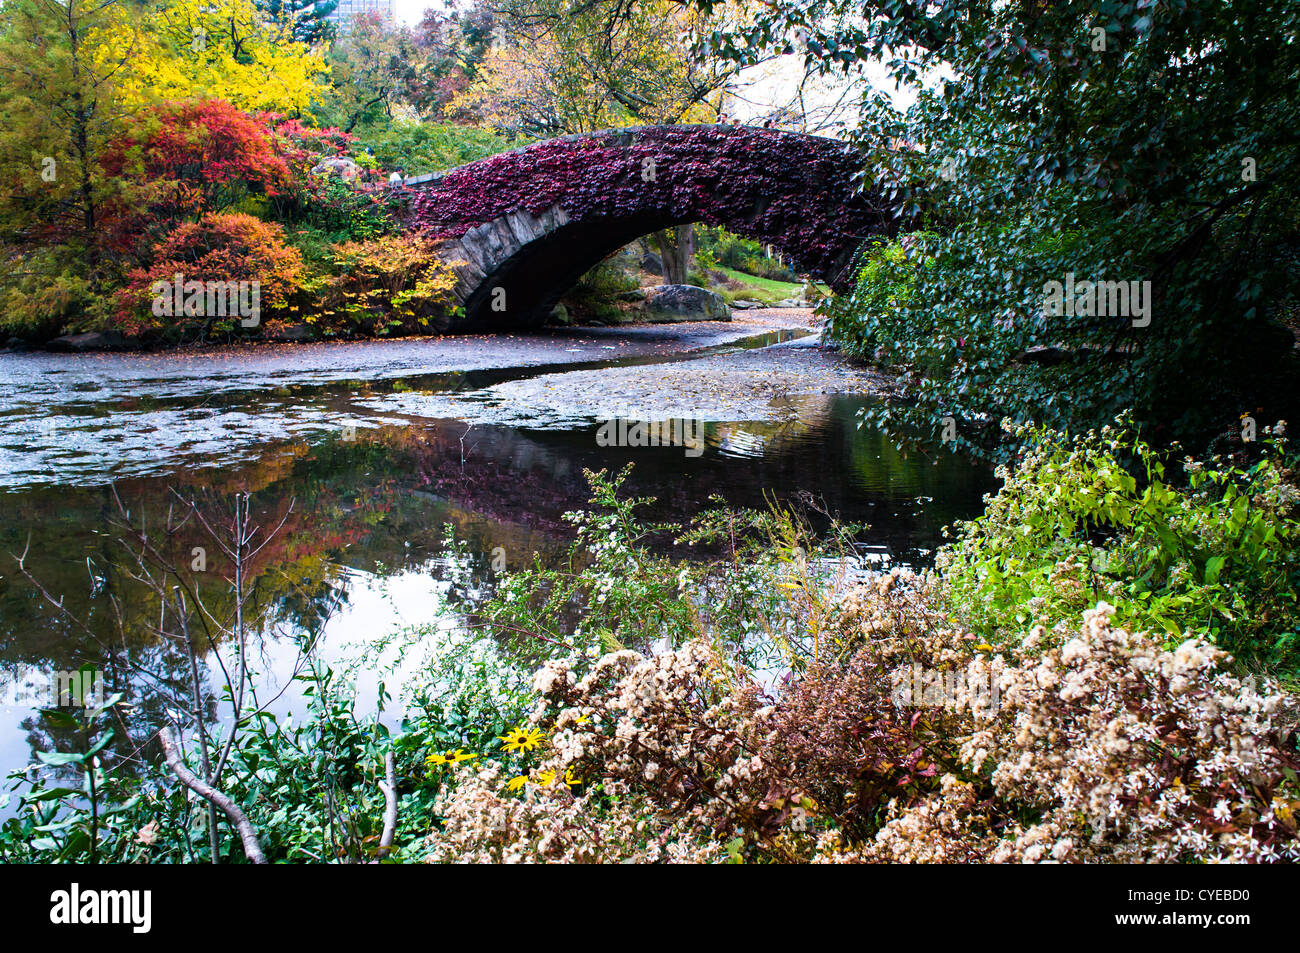 Autumn colors of trees decorate the Gapstow Bridge in Central Park in New York City. The picture was taken two days - Stock Image